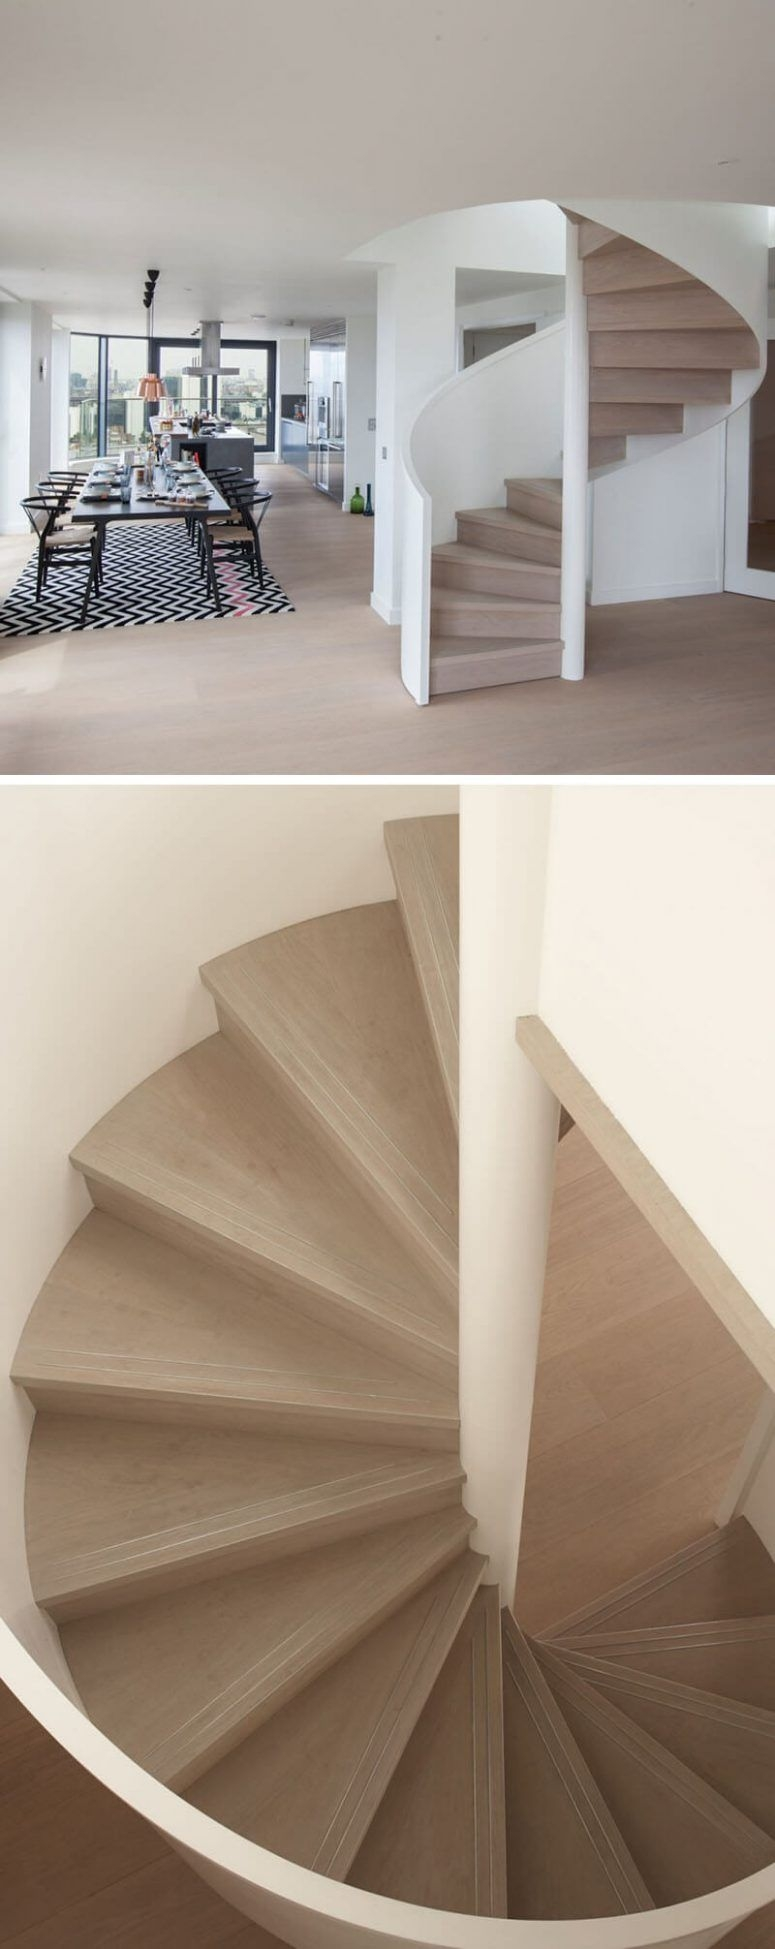 50 Uniquely Awesome Spiral Staircase Ideas For Your Home | Wood Spiral Staircase Plans | Before And After | Simple | Construction | Kid Friendly | Winding